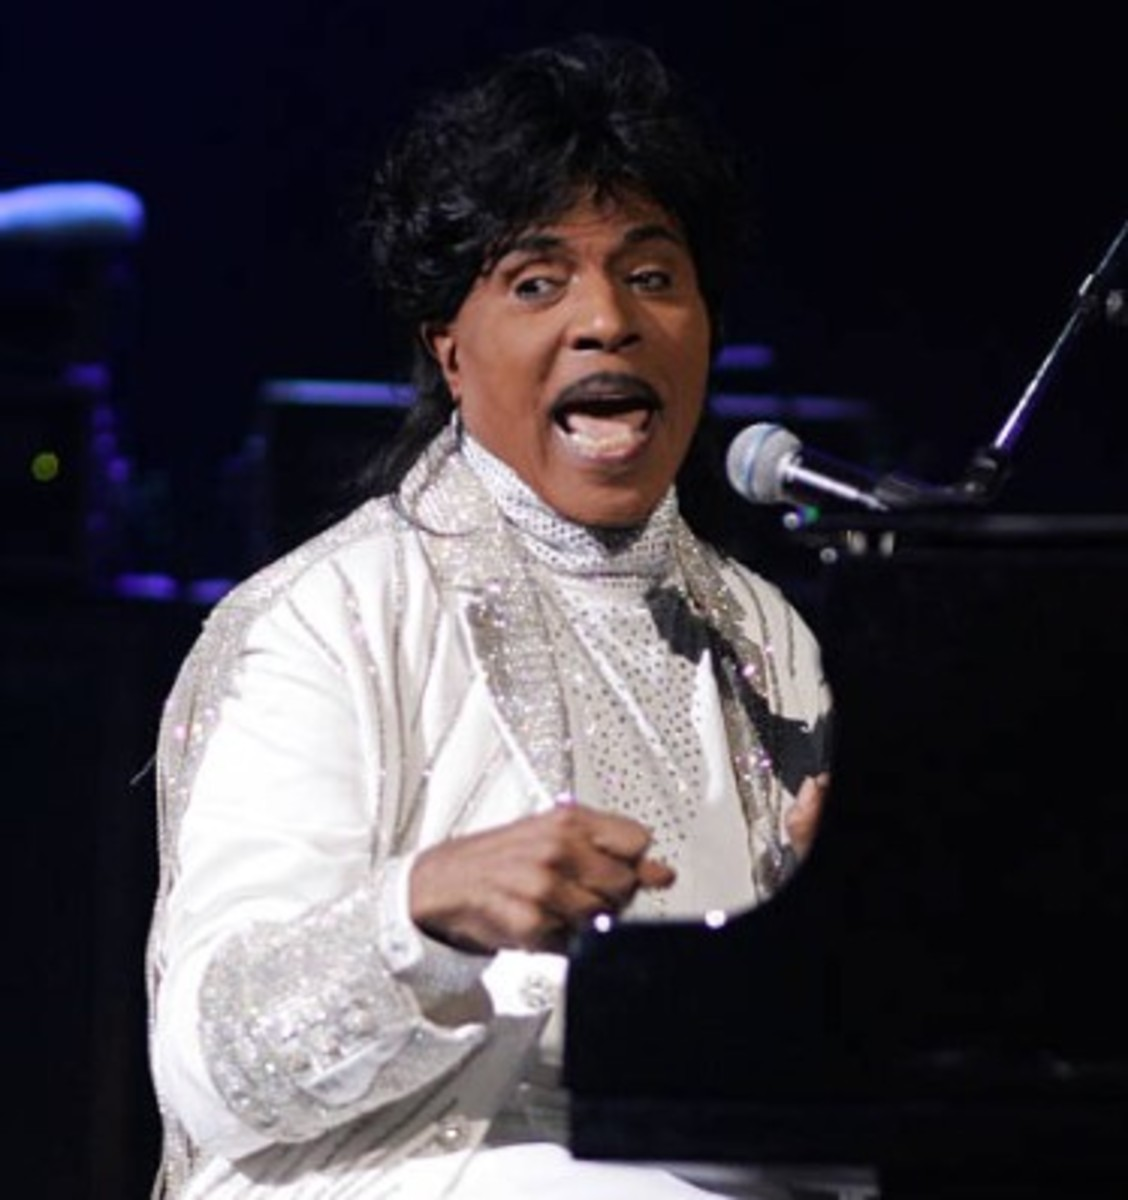 Little Richard in concert, 2016, Getty Images, photo by Tom Briglia/FilmMagic